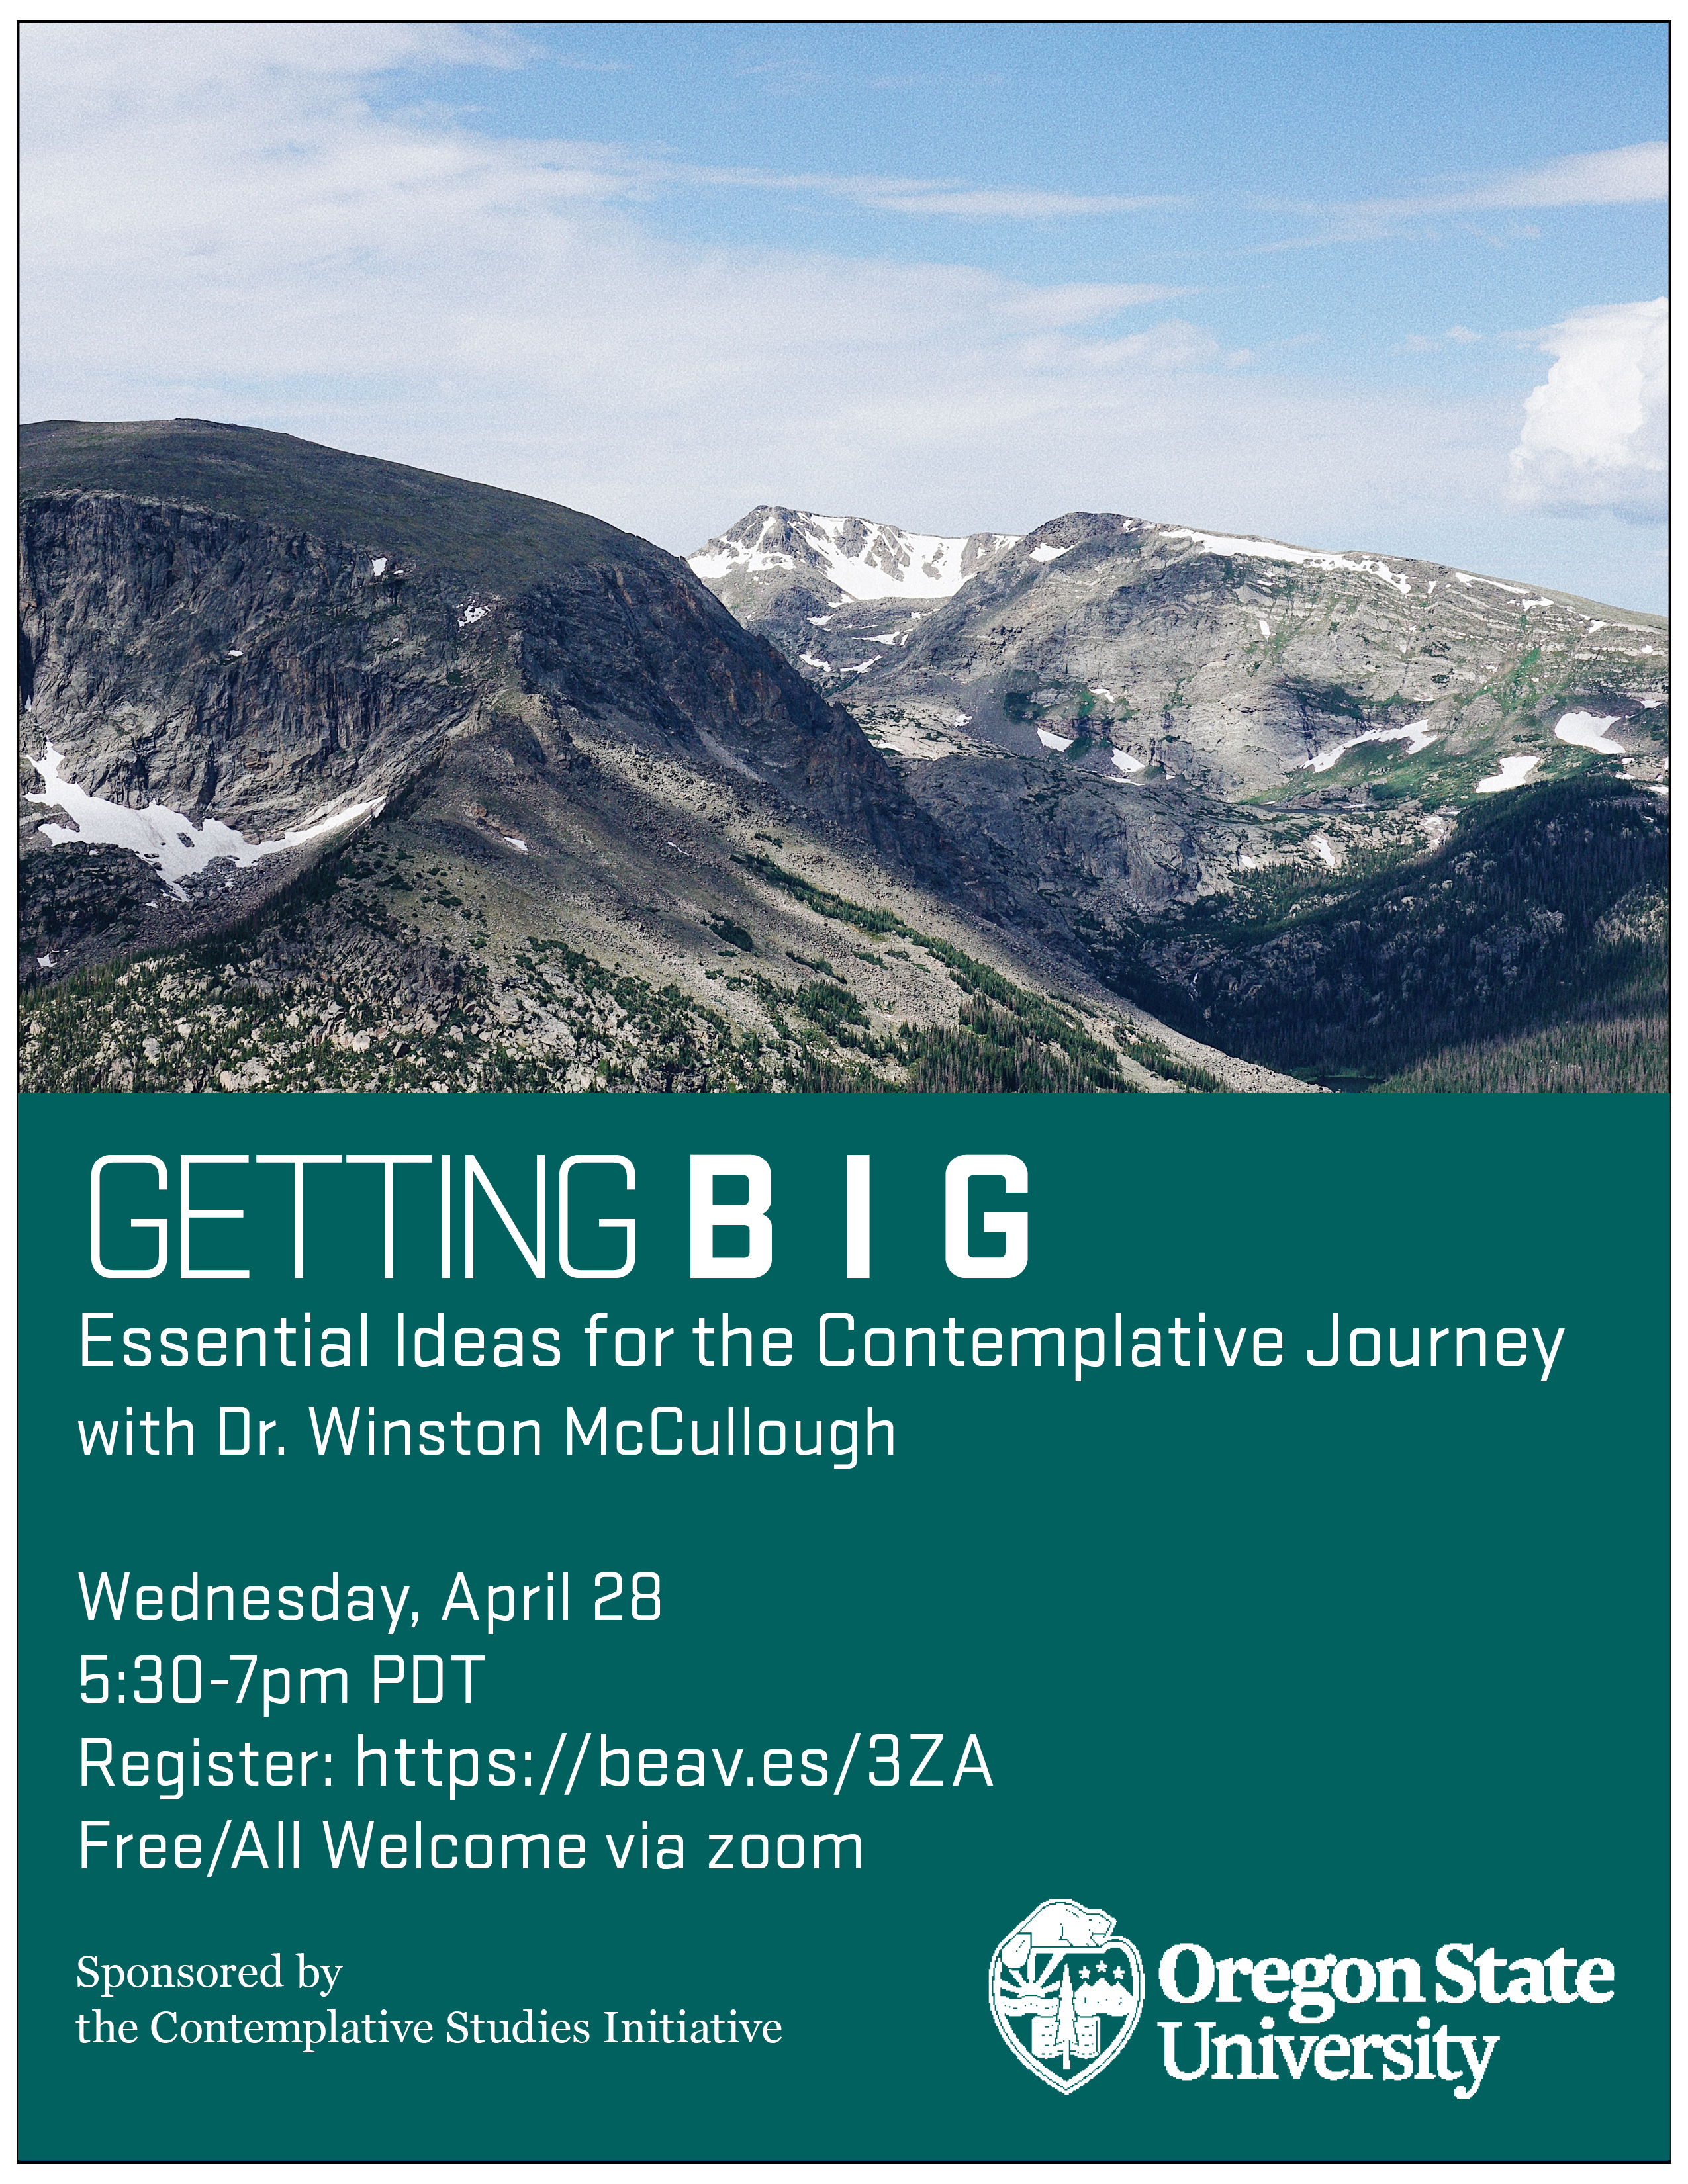 Getting Big Poster with Mountain image and event details